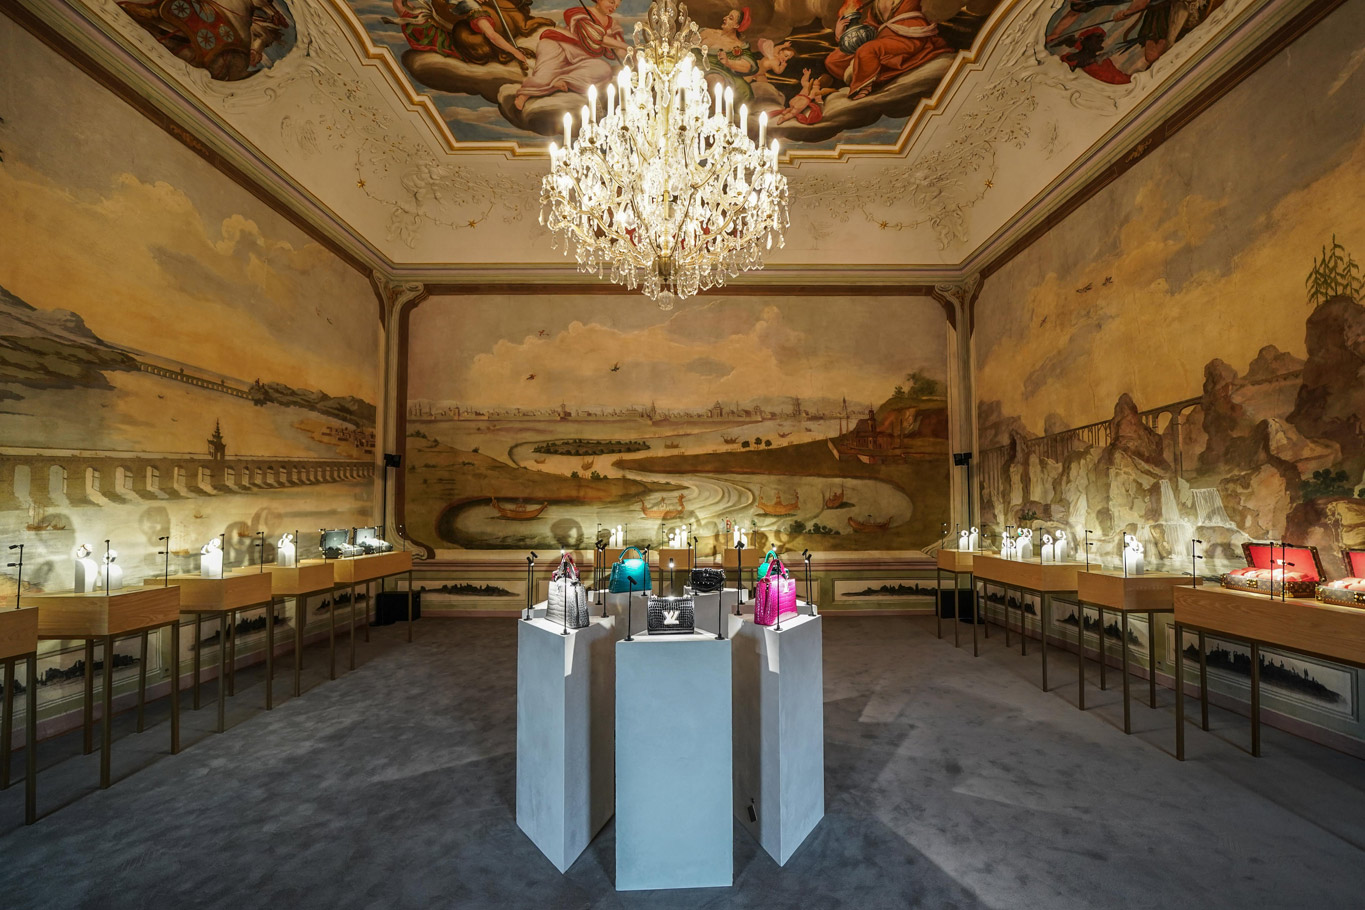 Room painted in an 18th century style, with an antique ceiling fresco dressed by a large chandelier. This room was decorated for the Louis Vuitton High Jewellery exhibition in Shanghai.